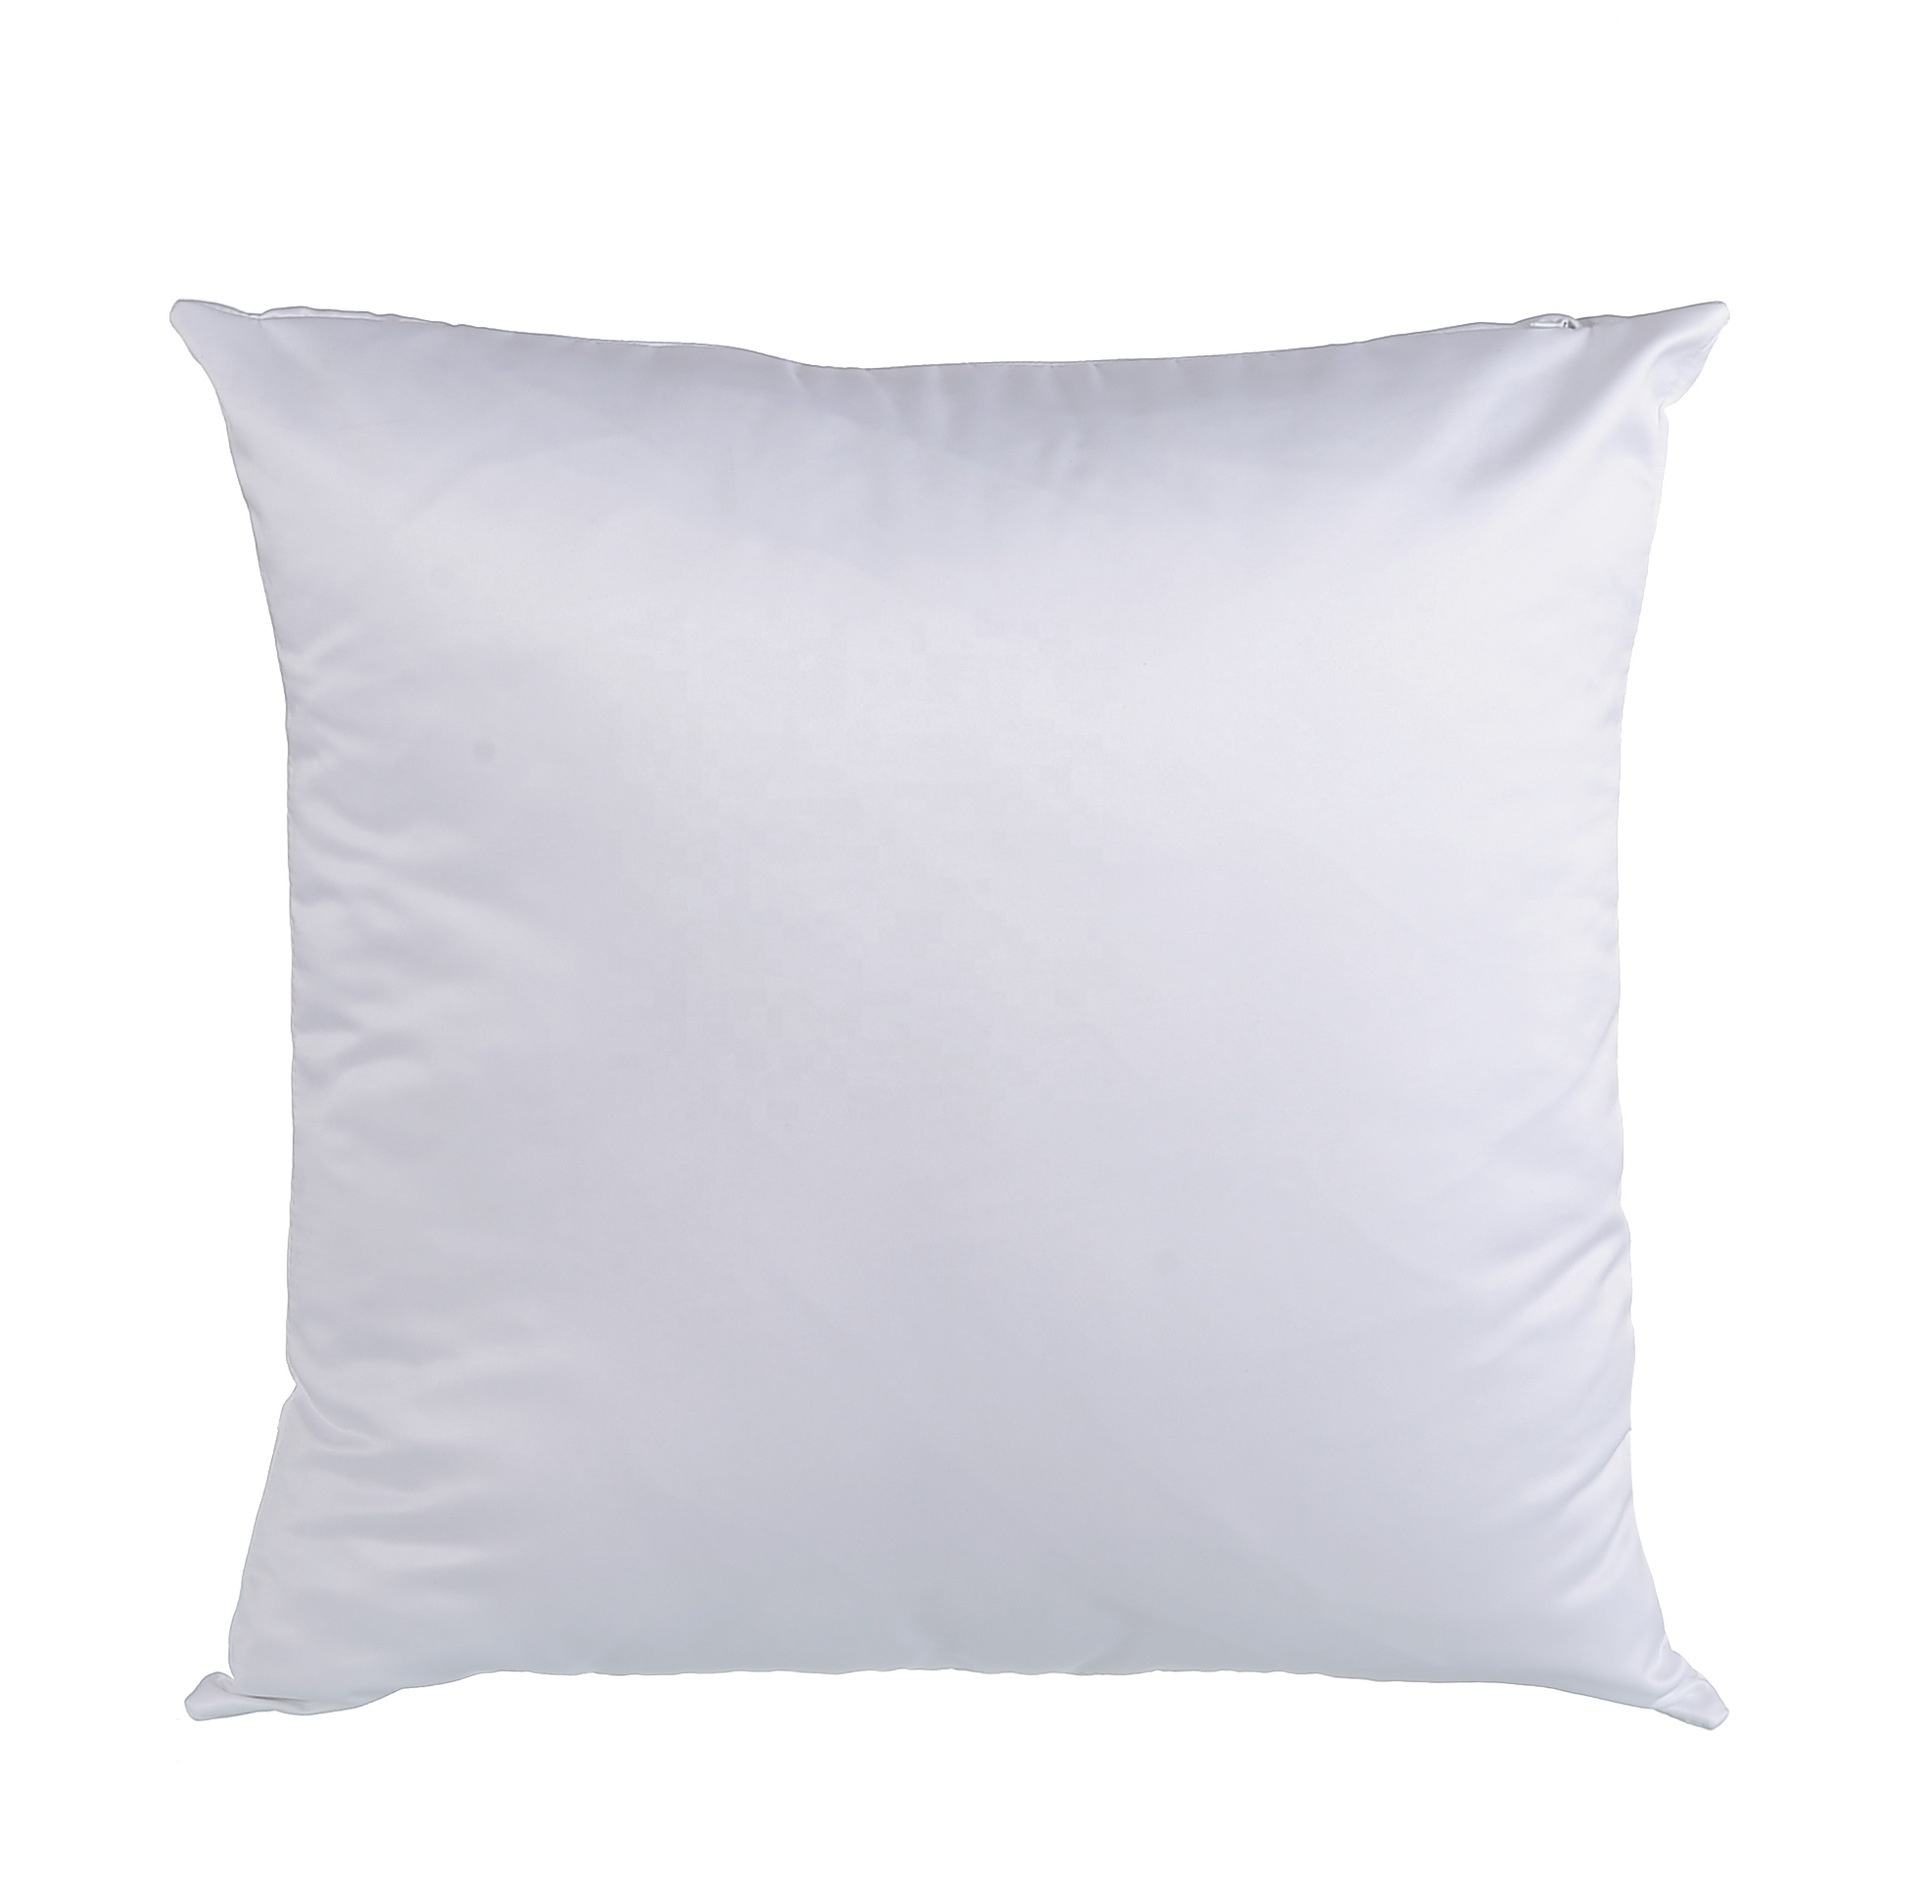 P-03 Hot Selling 40x40cm Custom Pillow Case Satin Sublimation Polyester Pillows Covers Full-White Pillow Case